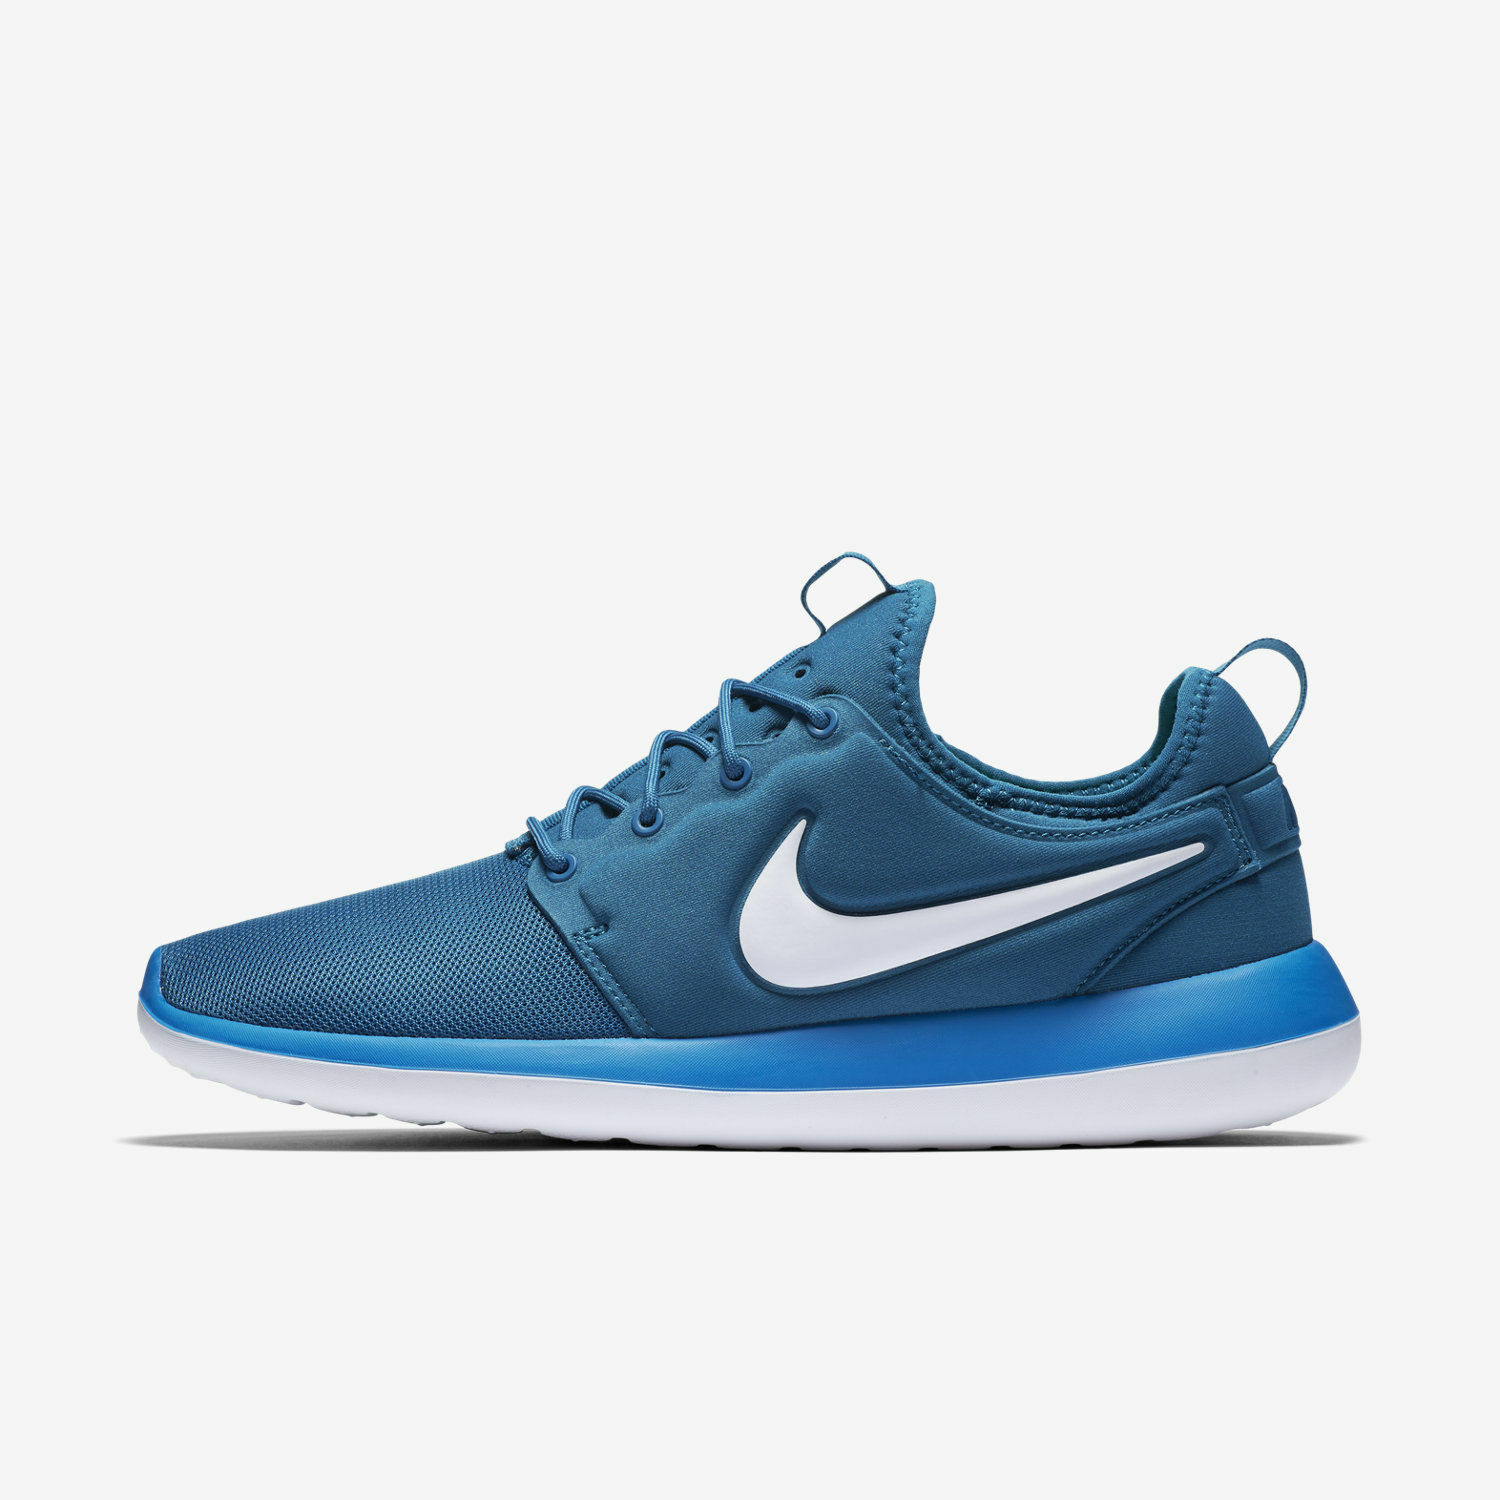 NIKE ROSHE TWO Running Trainers Gym Industrial Casual -8.5 (EUR 43) Industrial Gym bleu 5ddd91